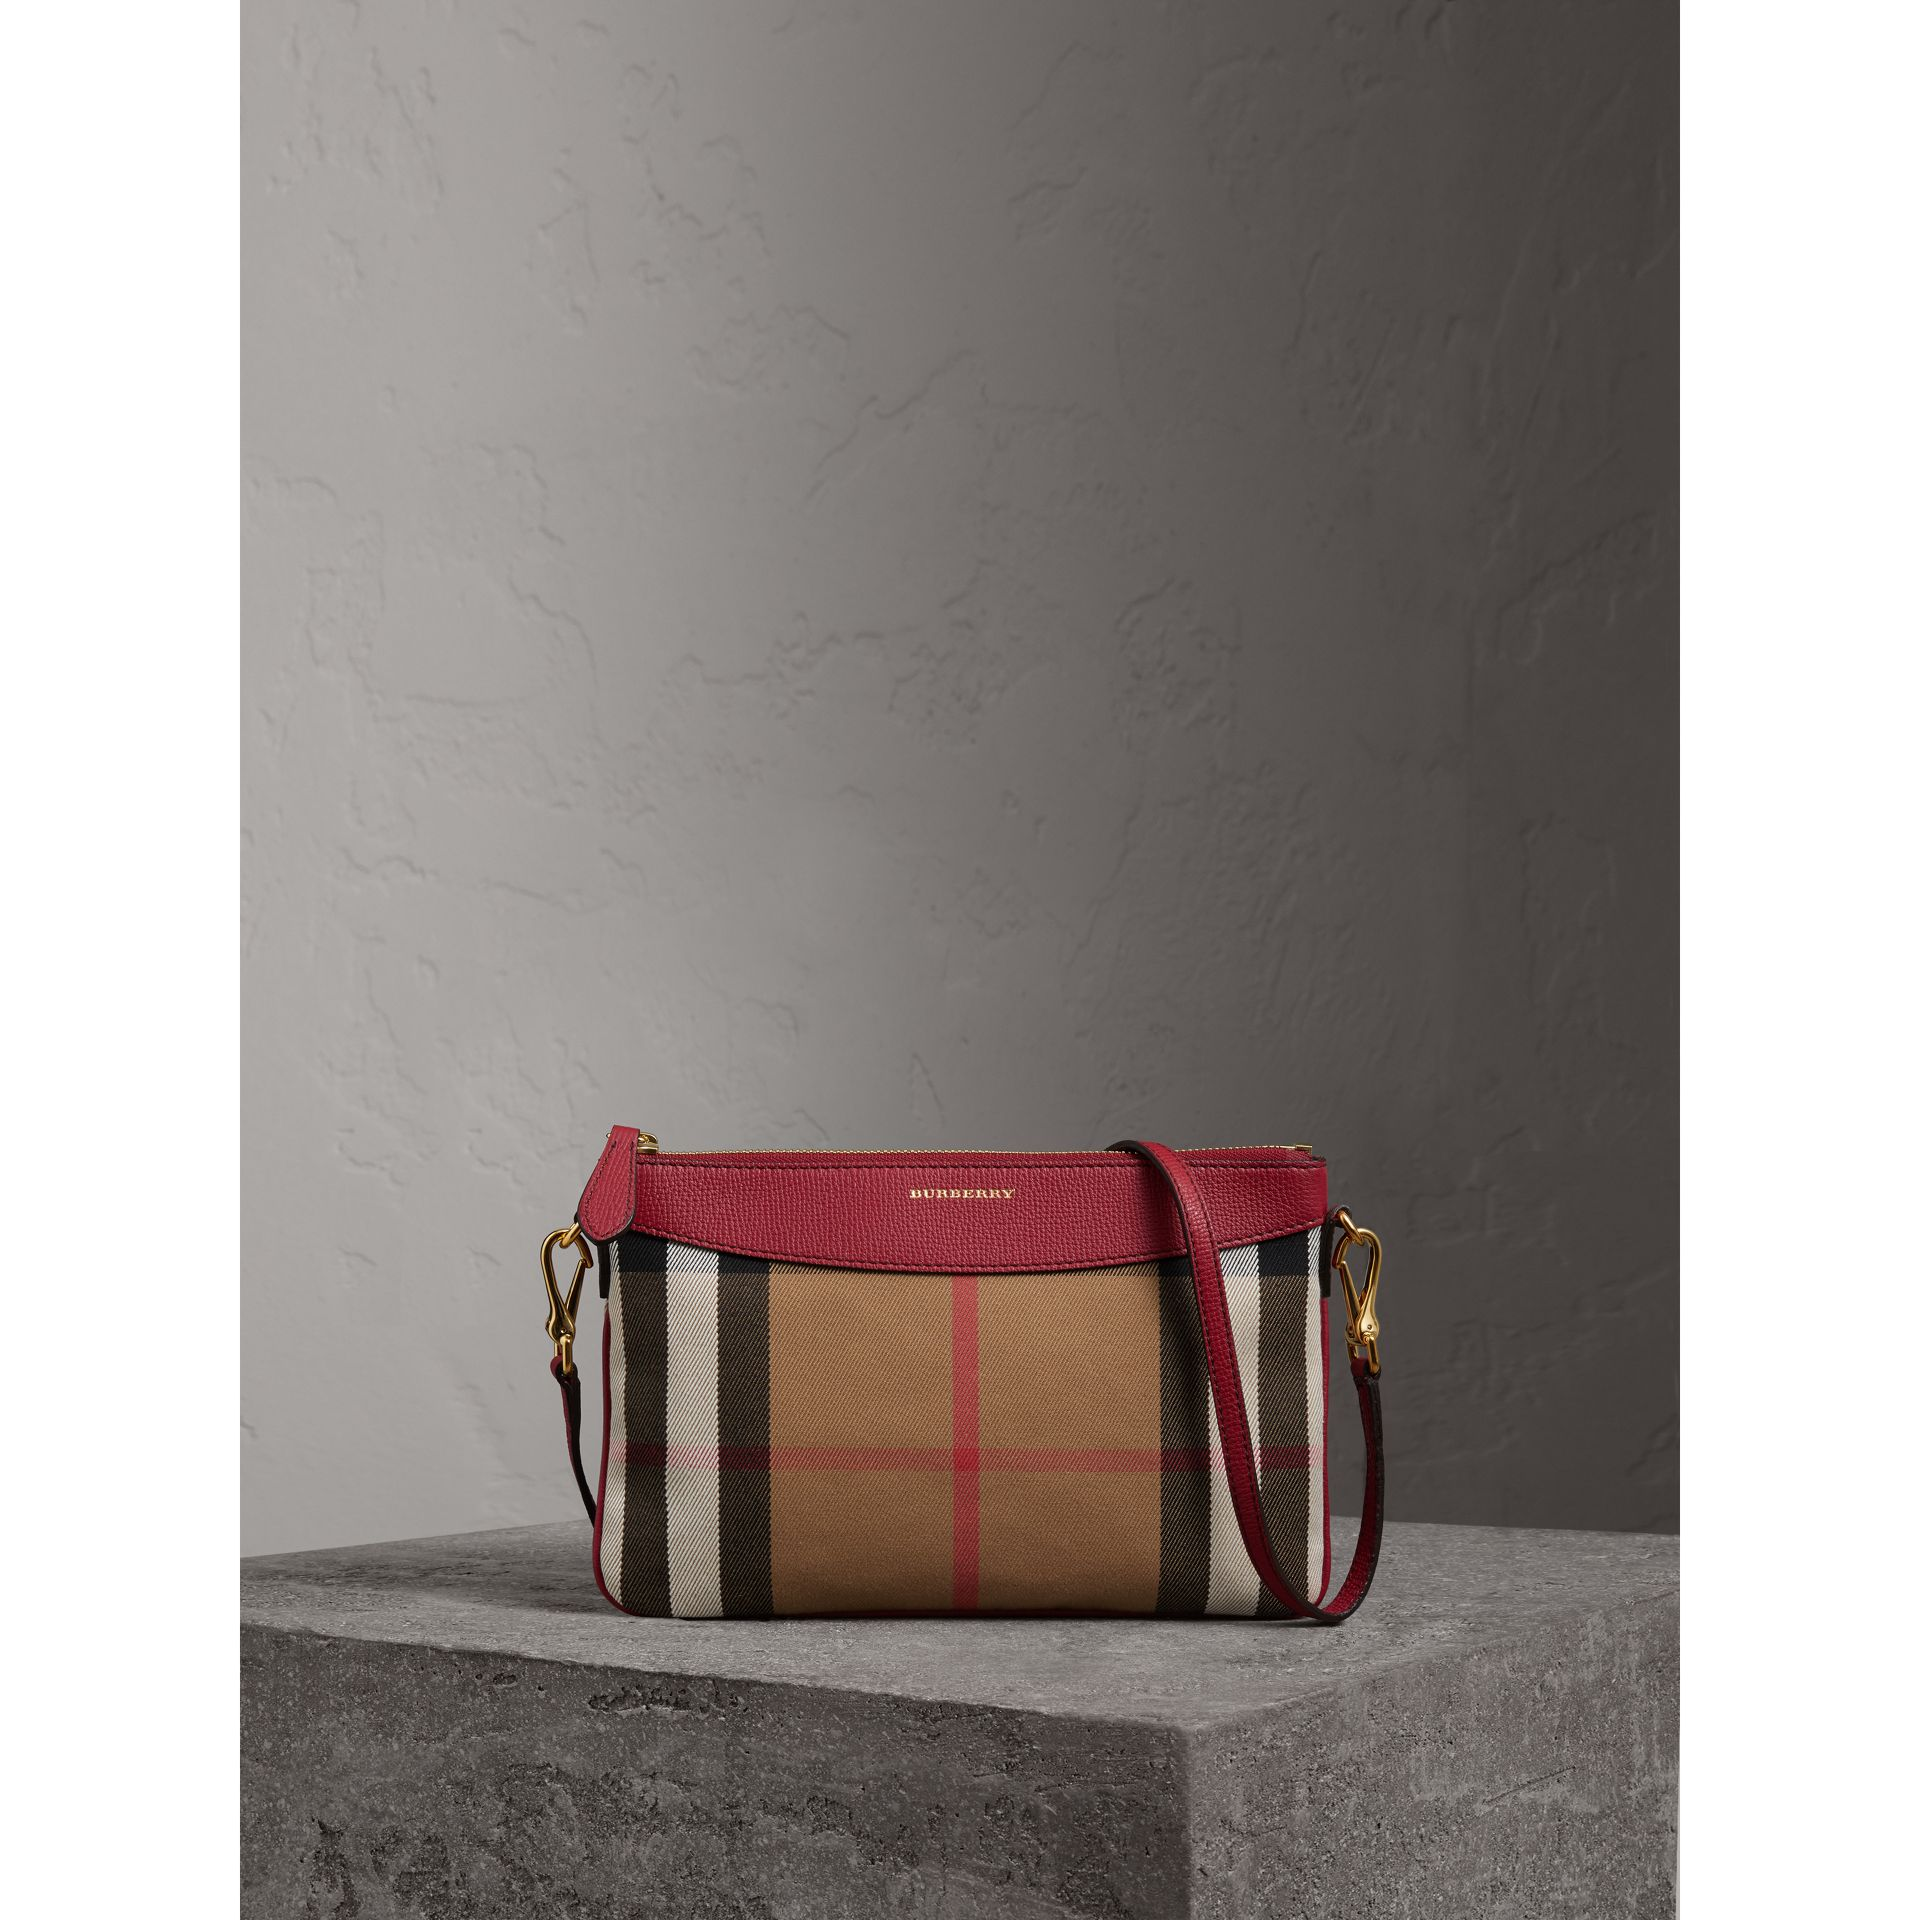 House Check and Leather Clutch Bag in Military Red - Women | Burberry Australia - gallery image 1